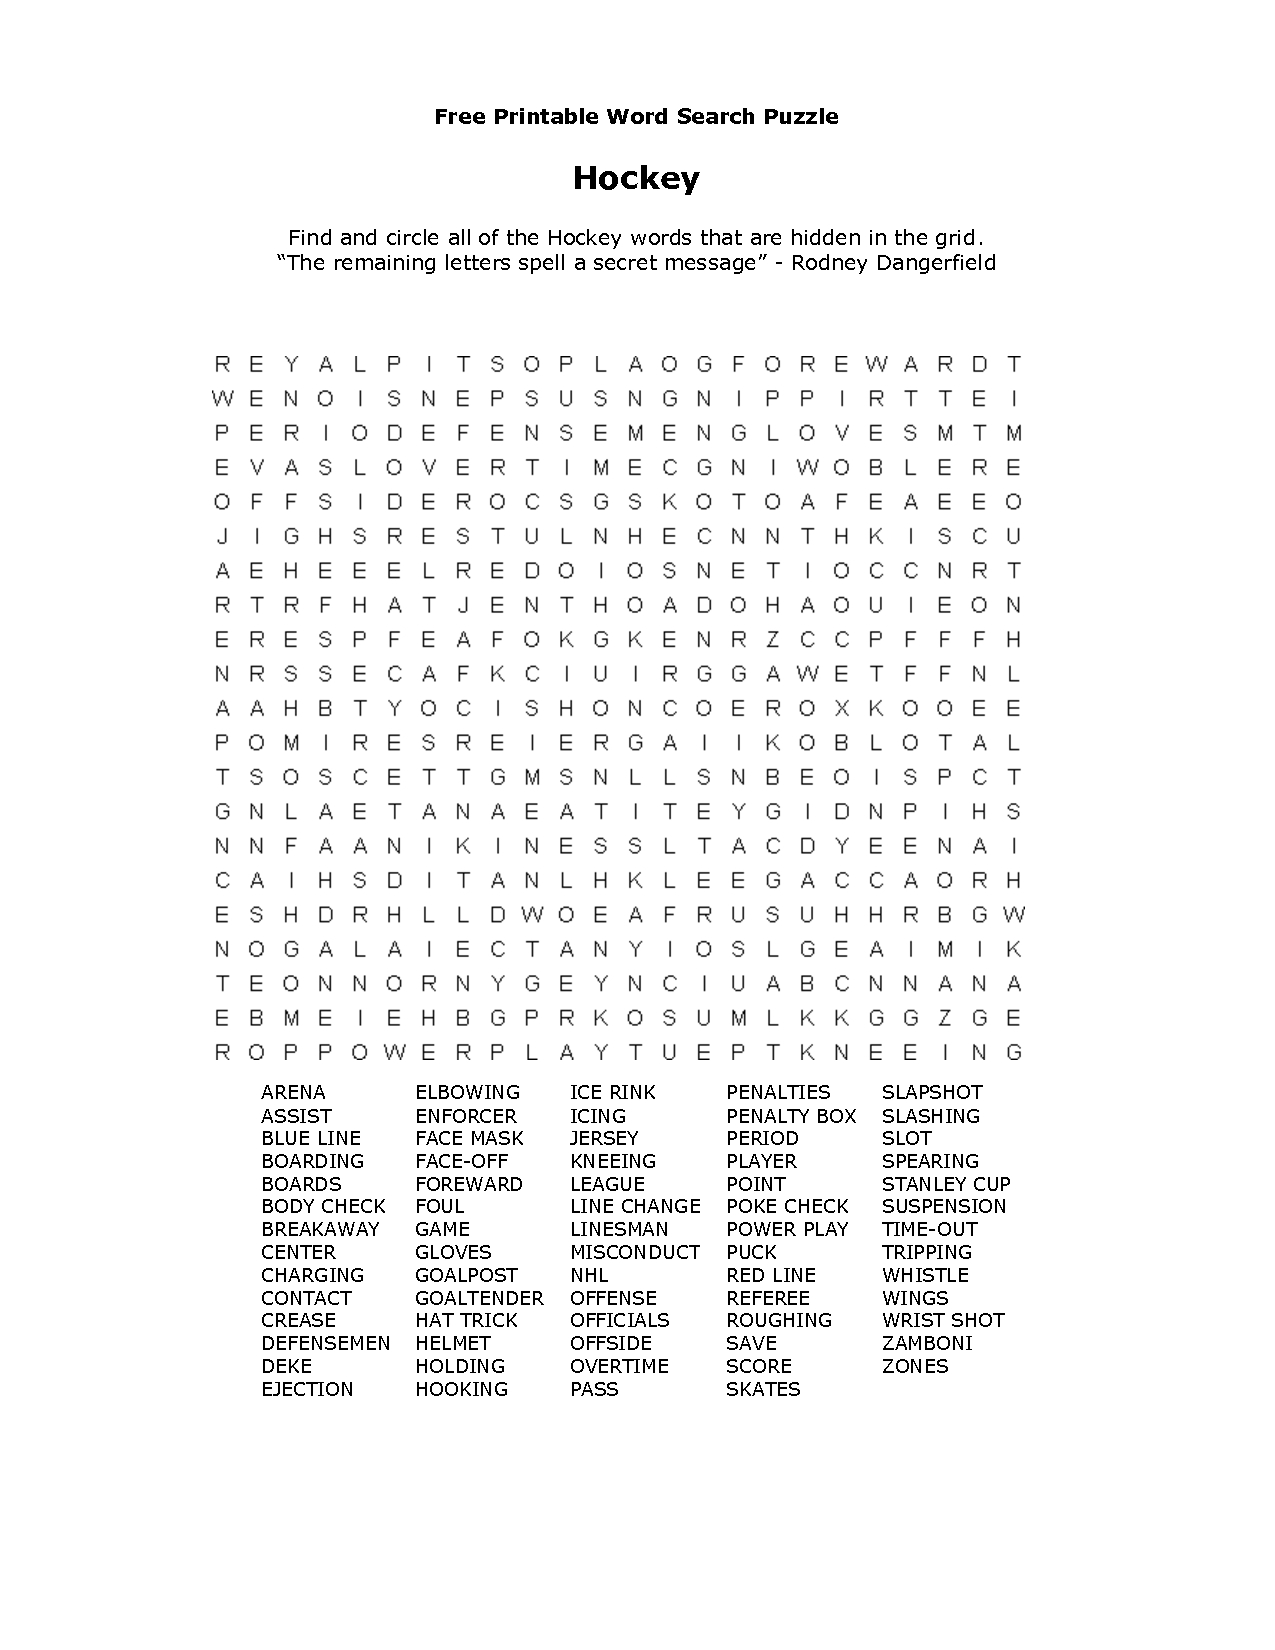 Free Printable Word Searches | Kiddo Shelter | Games | Free - Free Printable Word Search Puzzles For Adults